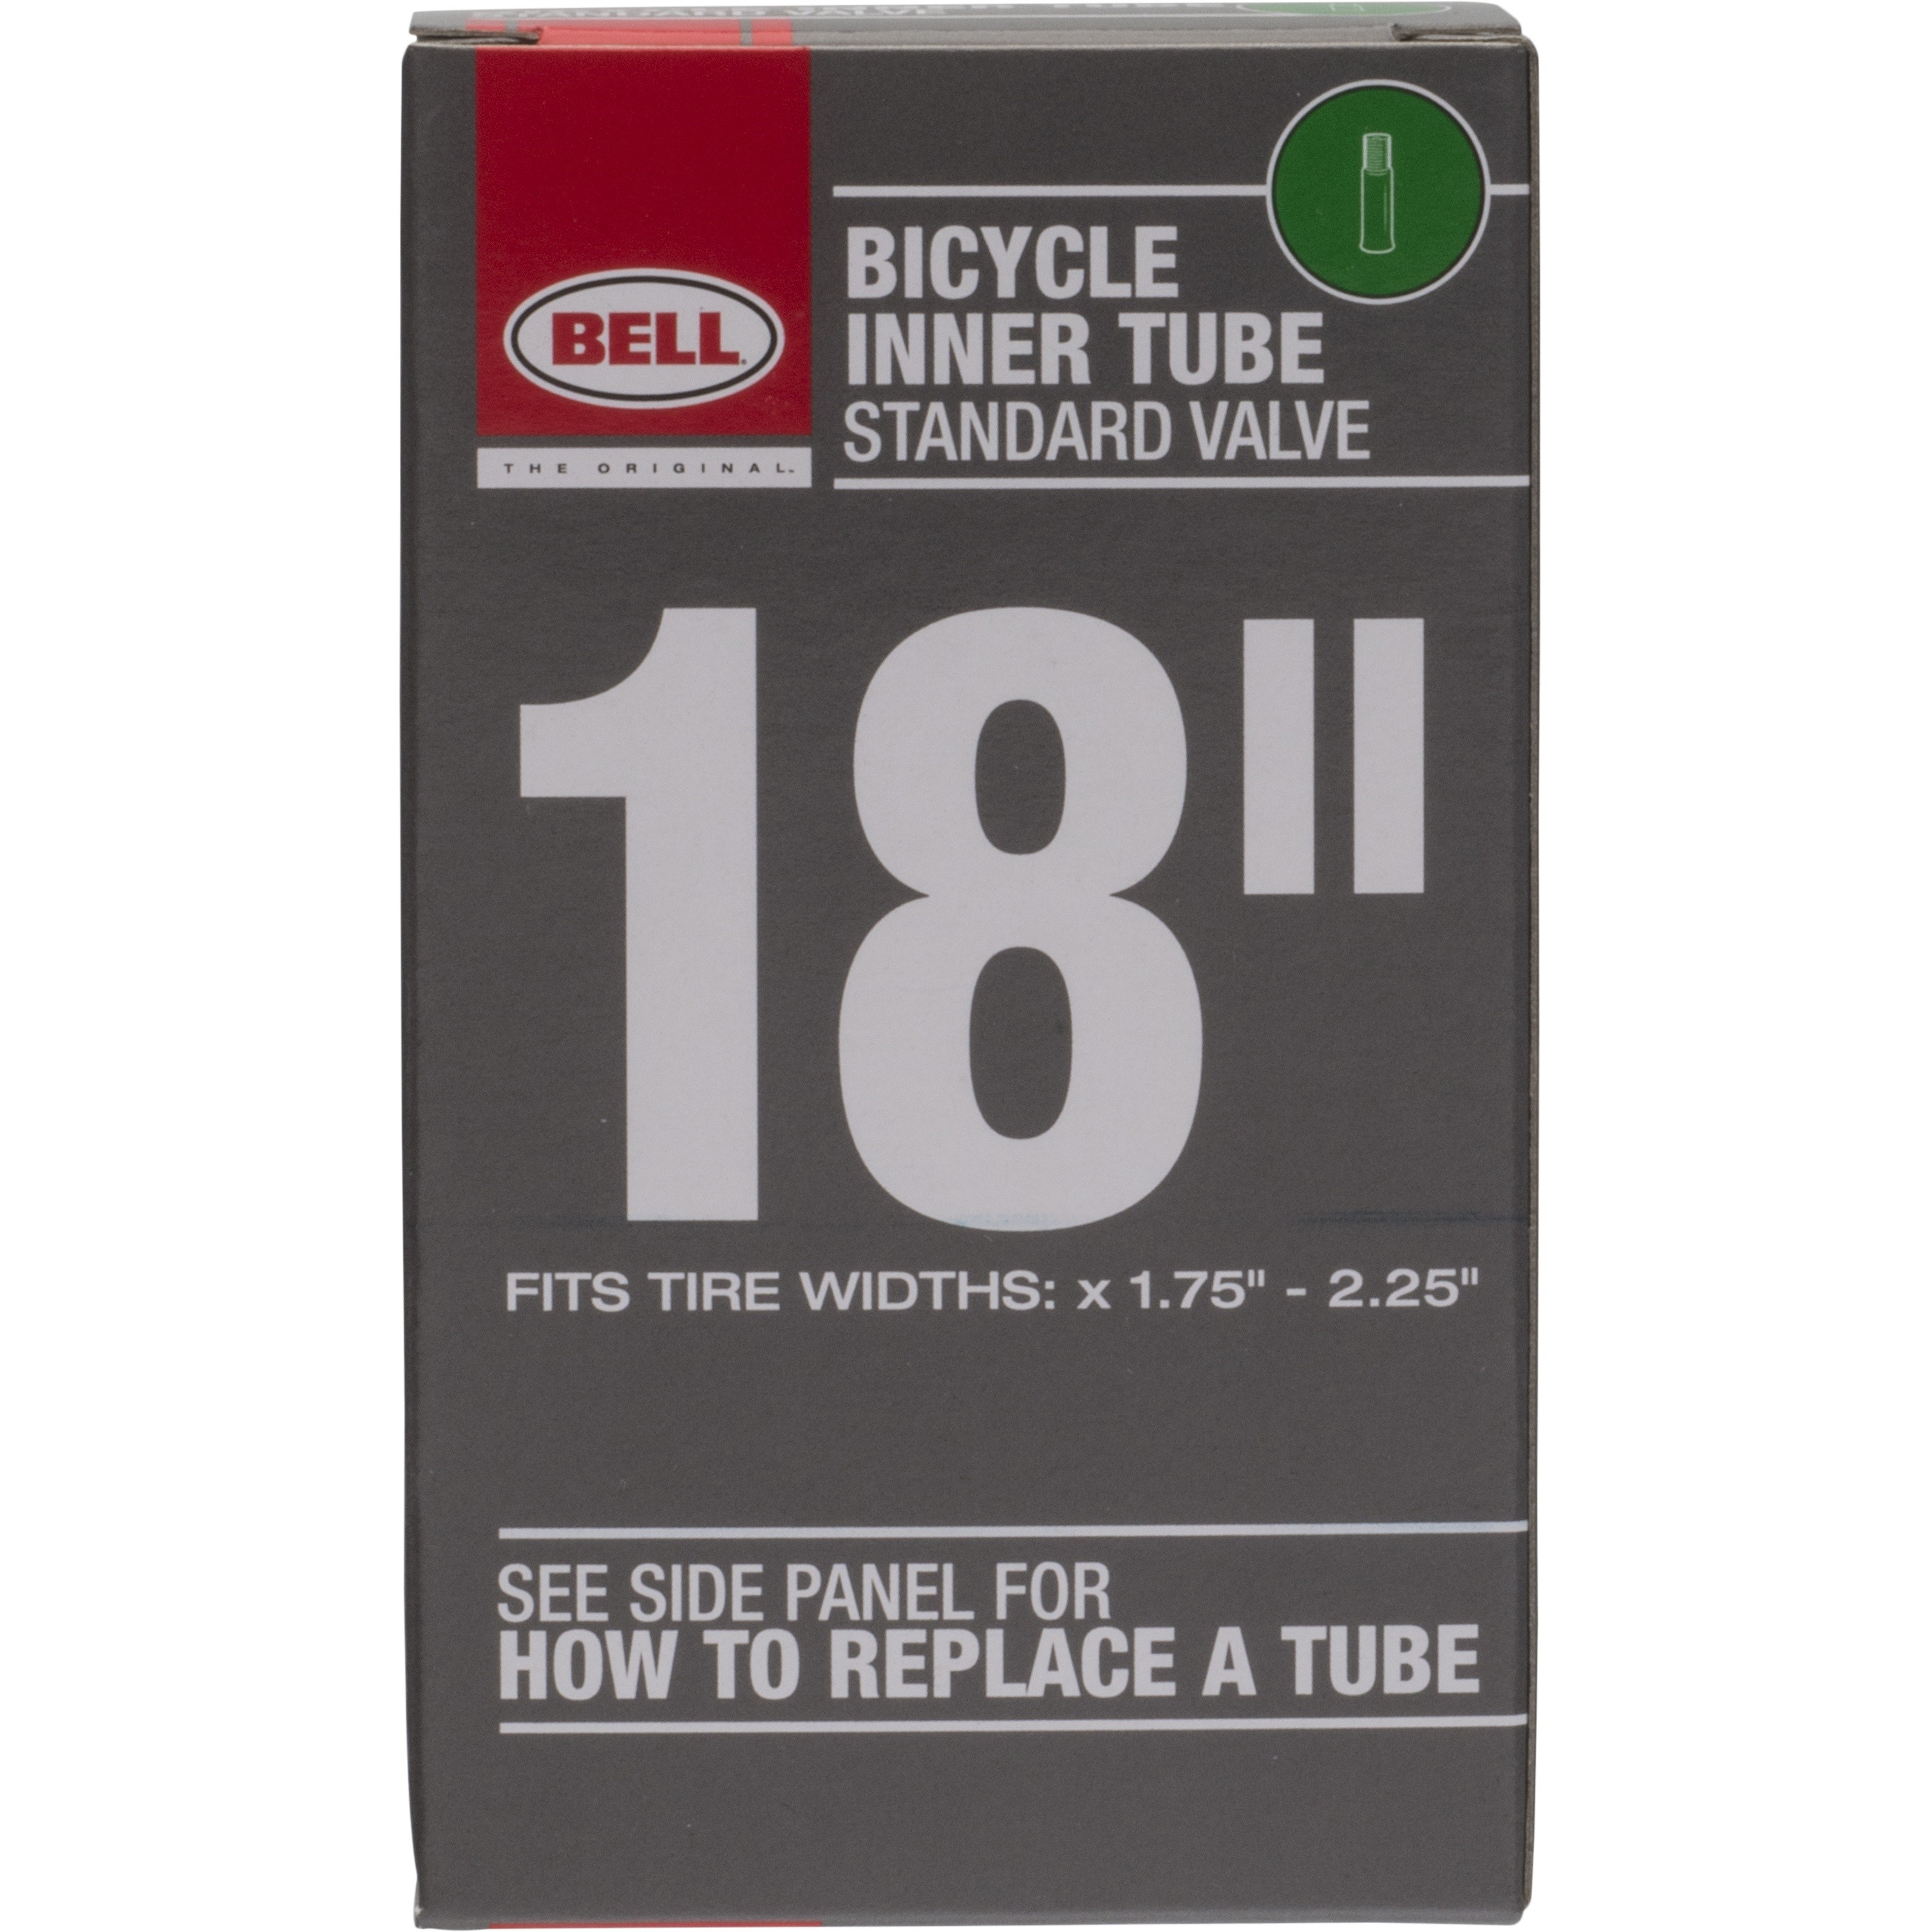 "Bell Sports Standard Schrader Replacement Bicycle Inner Tube, 18"""" x 1.75-2.25"""""